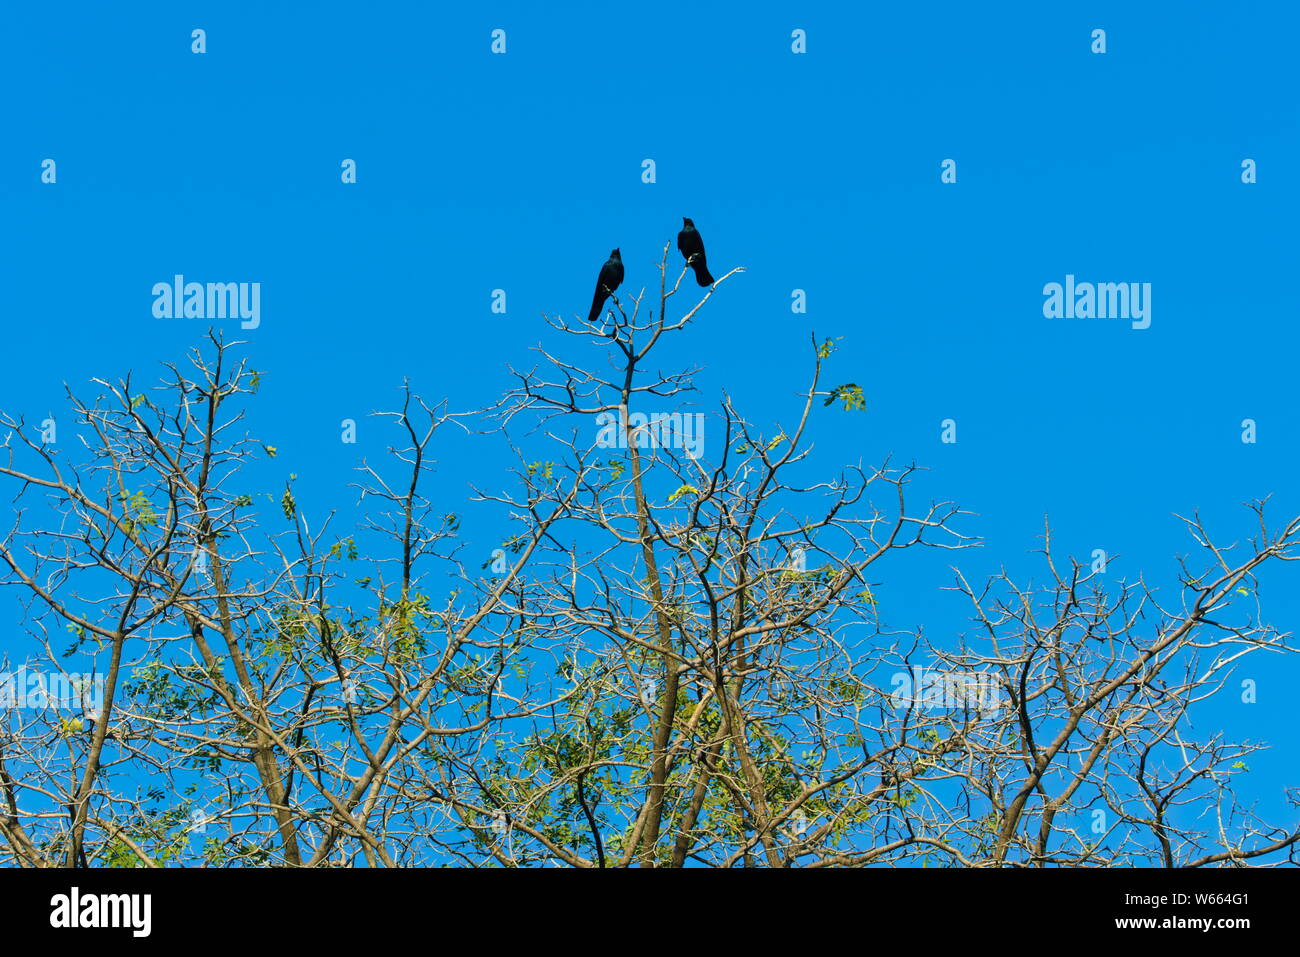 Two large black crows, sunning themselves atop a sparsely leaved tree, under a stunningly, deep blue, morning sky, in a park in Bangkok, Thailand. Stock Photo